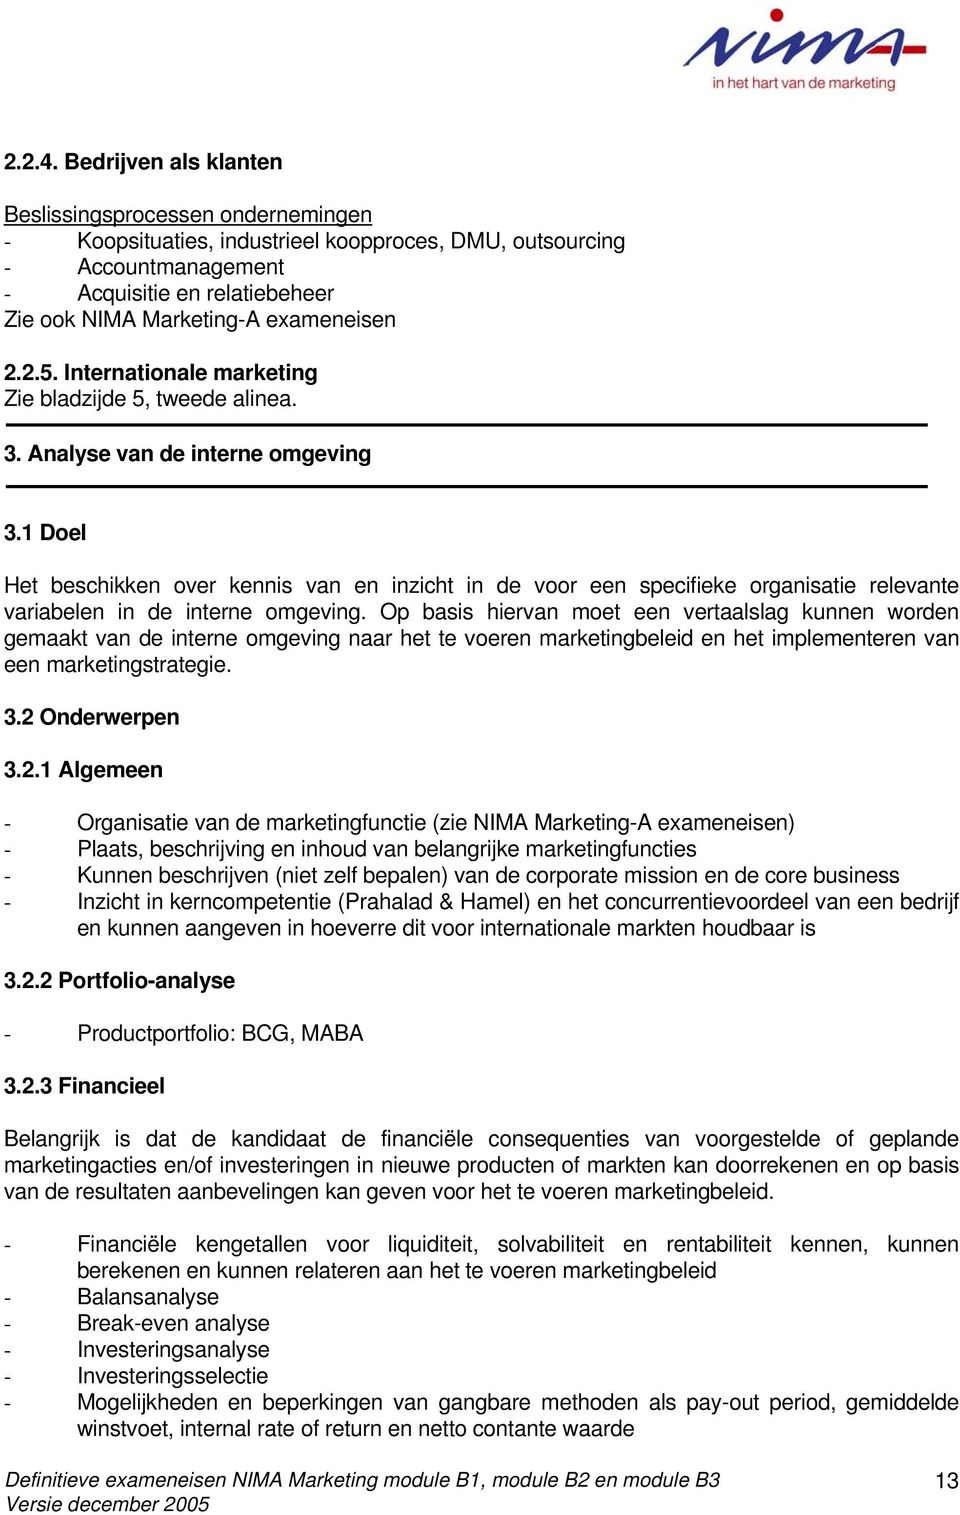 exameneisen 2.2.5. Internationale marketing Zie bladzijde 5, tweede alinea. 3. Analyse van de interne omgeving 3.